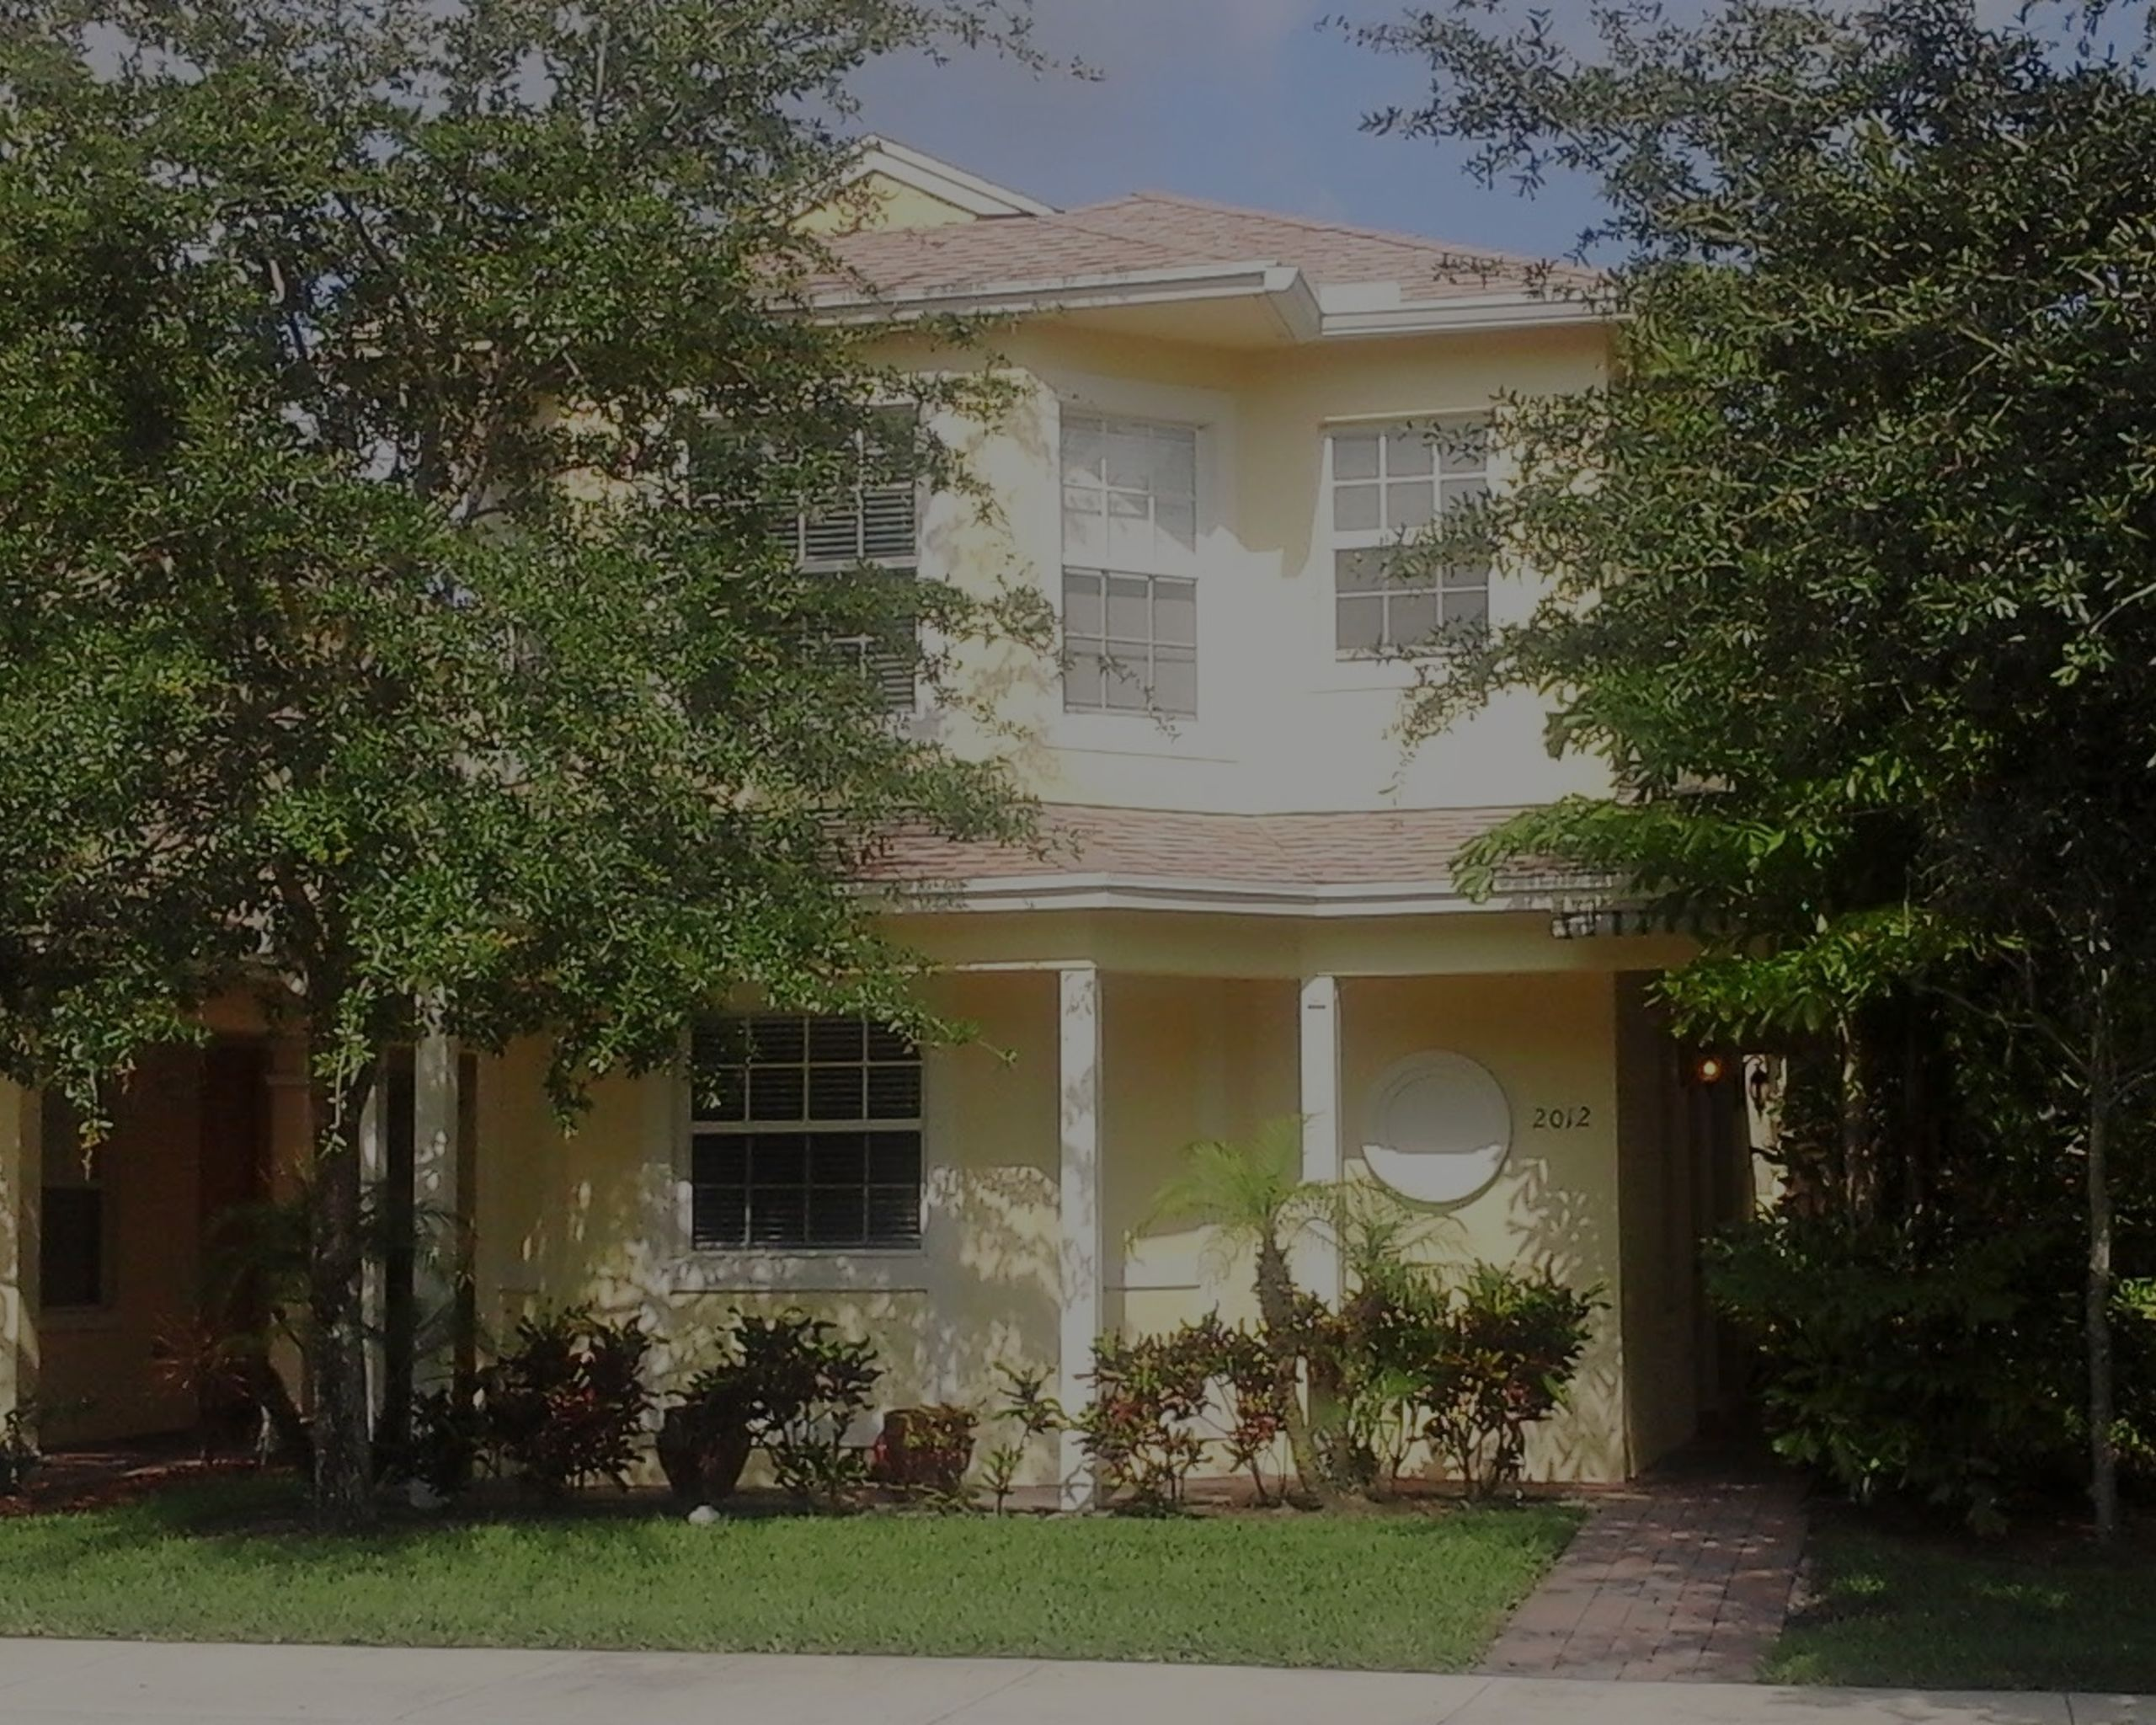 Open House Sat East Lake Village Port St. Lucie from 11:00 to 2:00AM